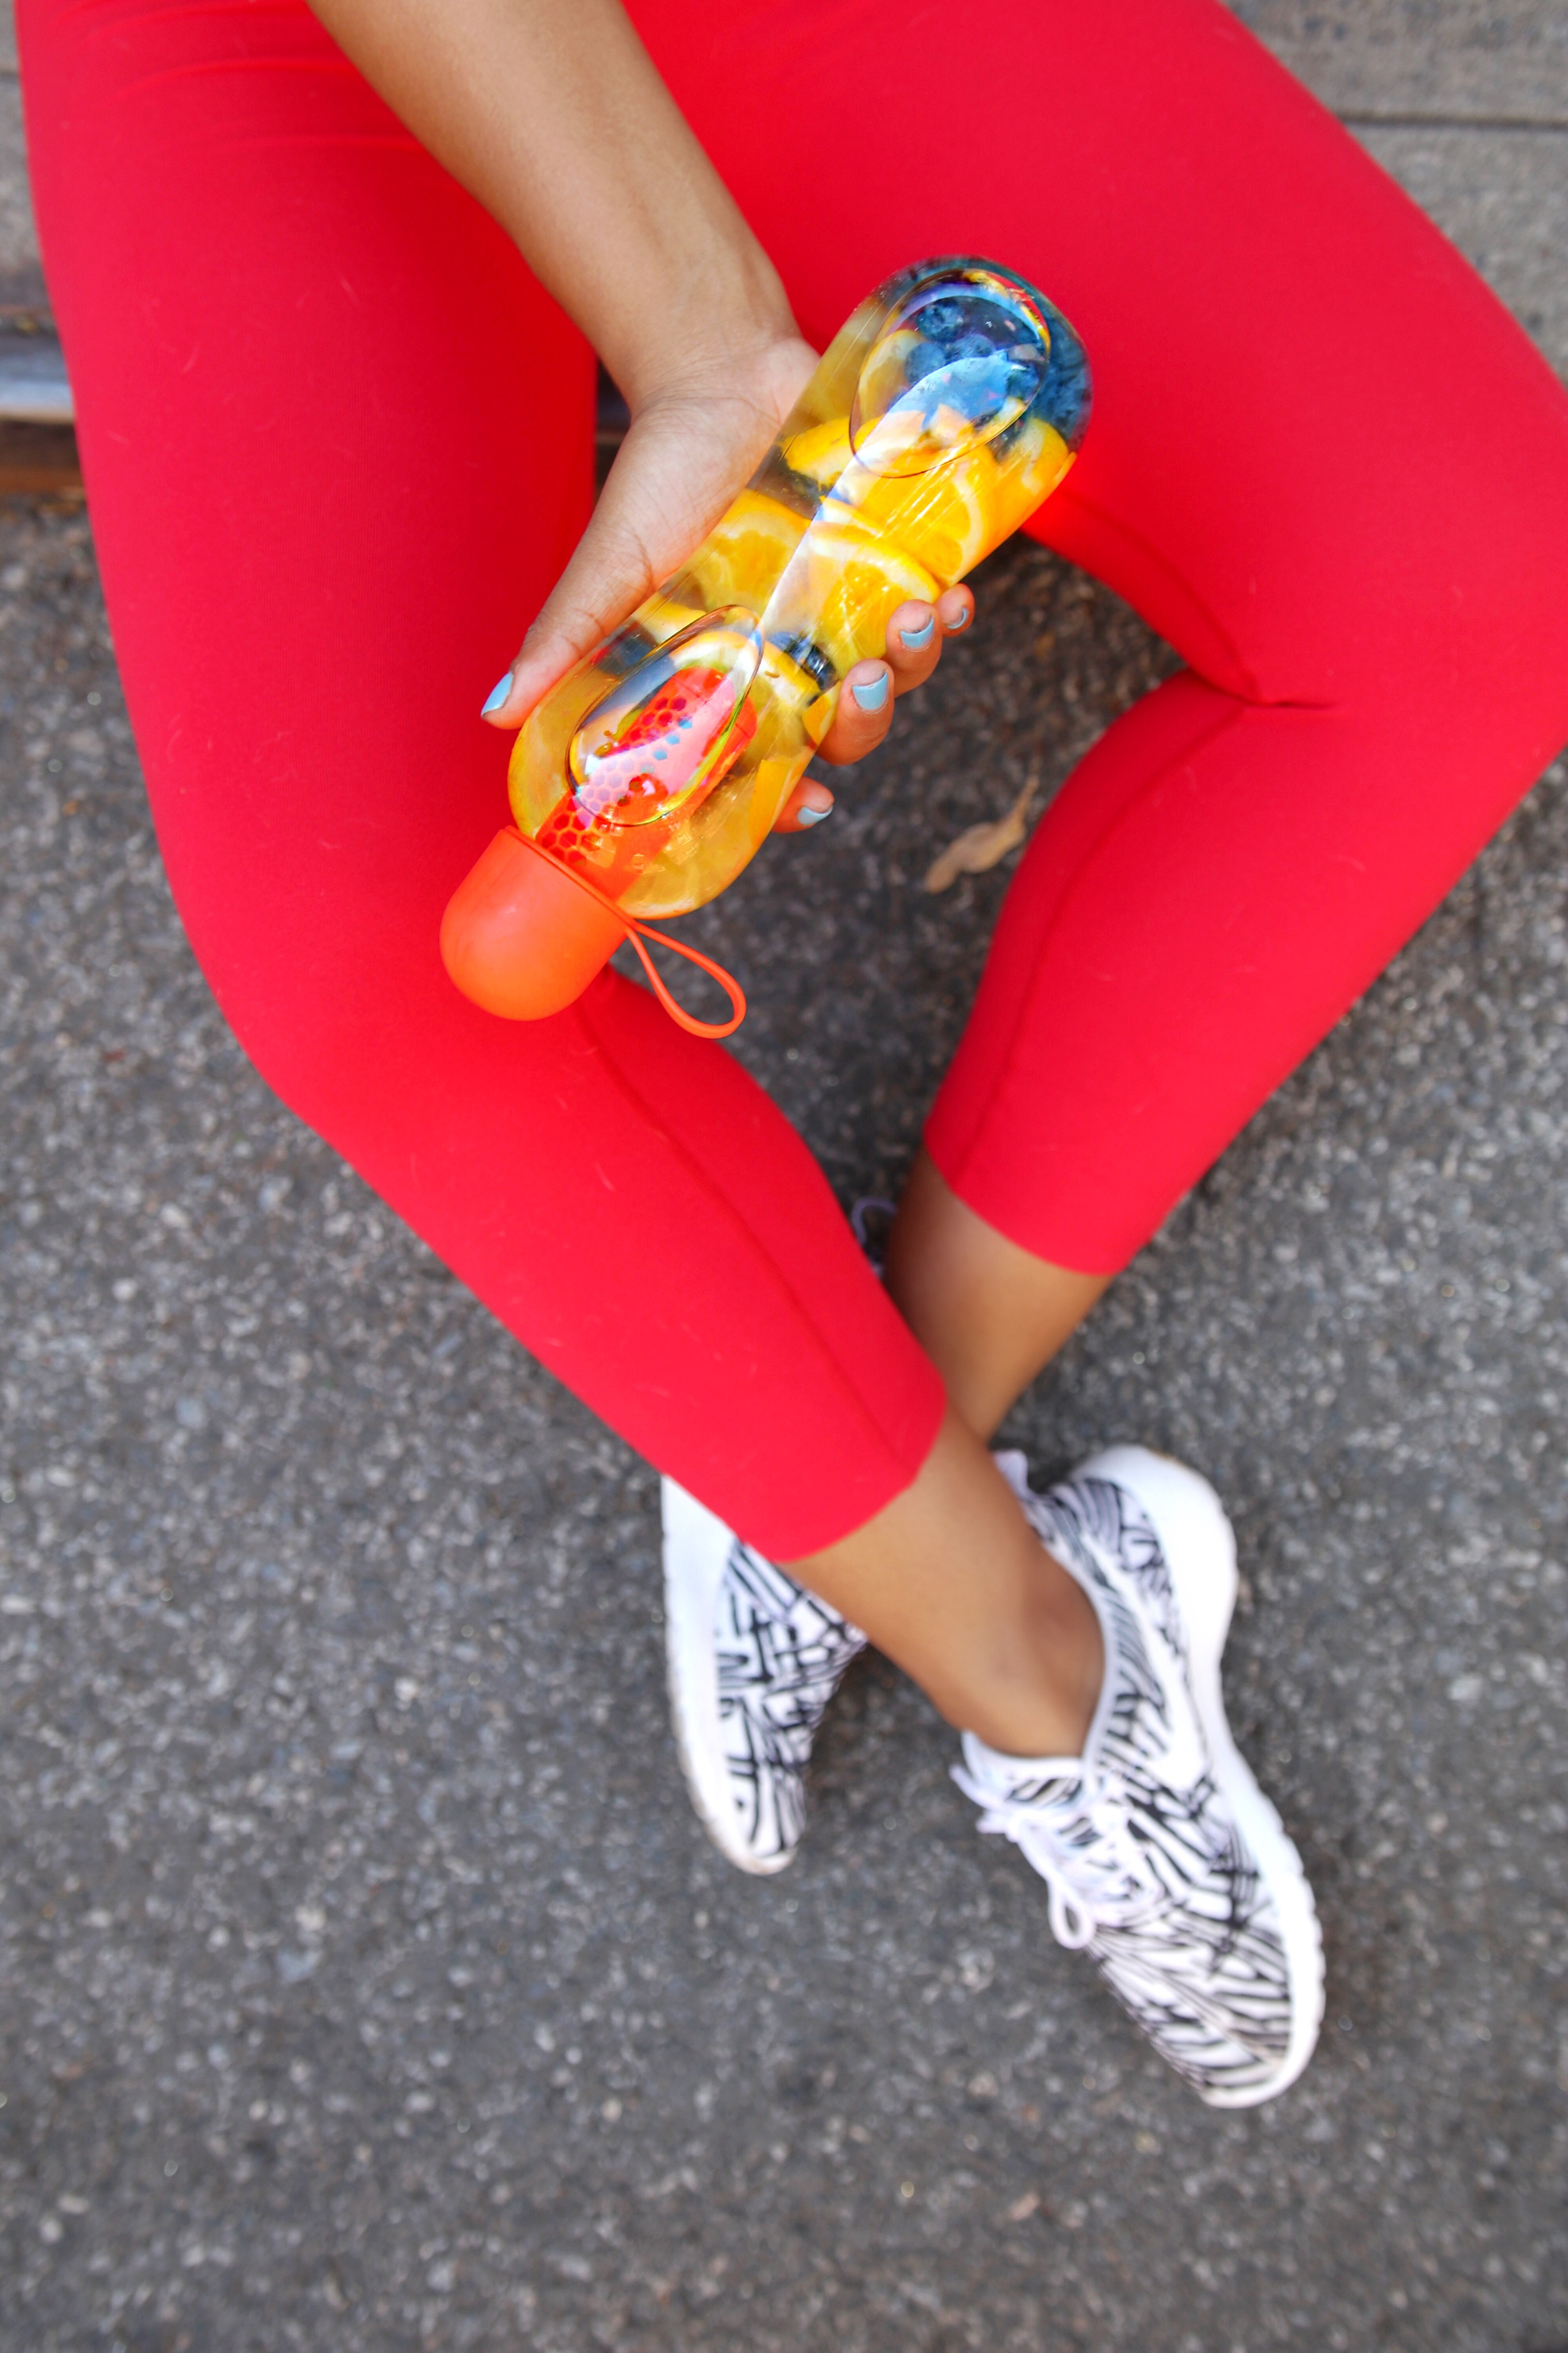 Work Out Style! pants: http://bit.ly/28YAqpD sports bra: http://bit.ly/292Ht25 bottle: http://bit.ly/295A2rz nikes: http://bit.ly/295AnMw